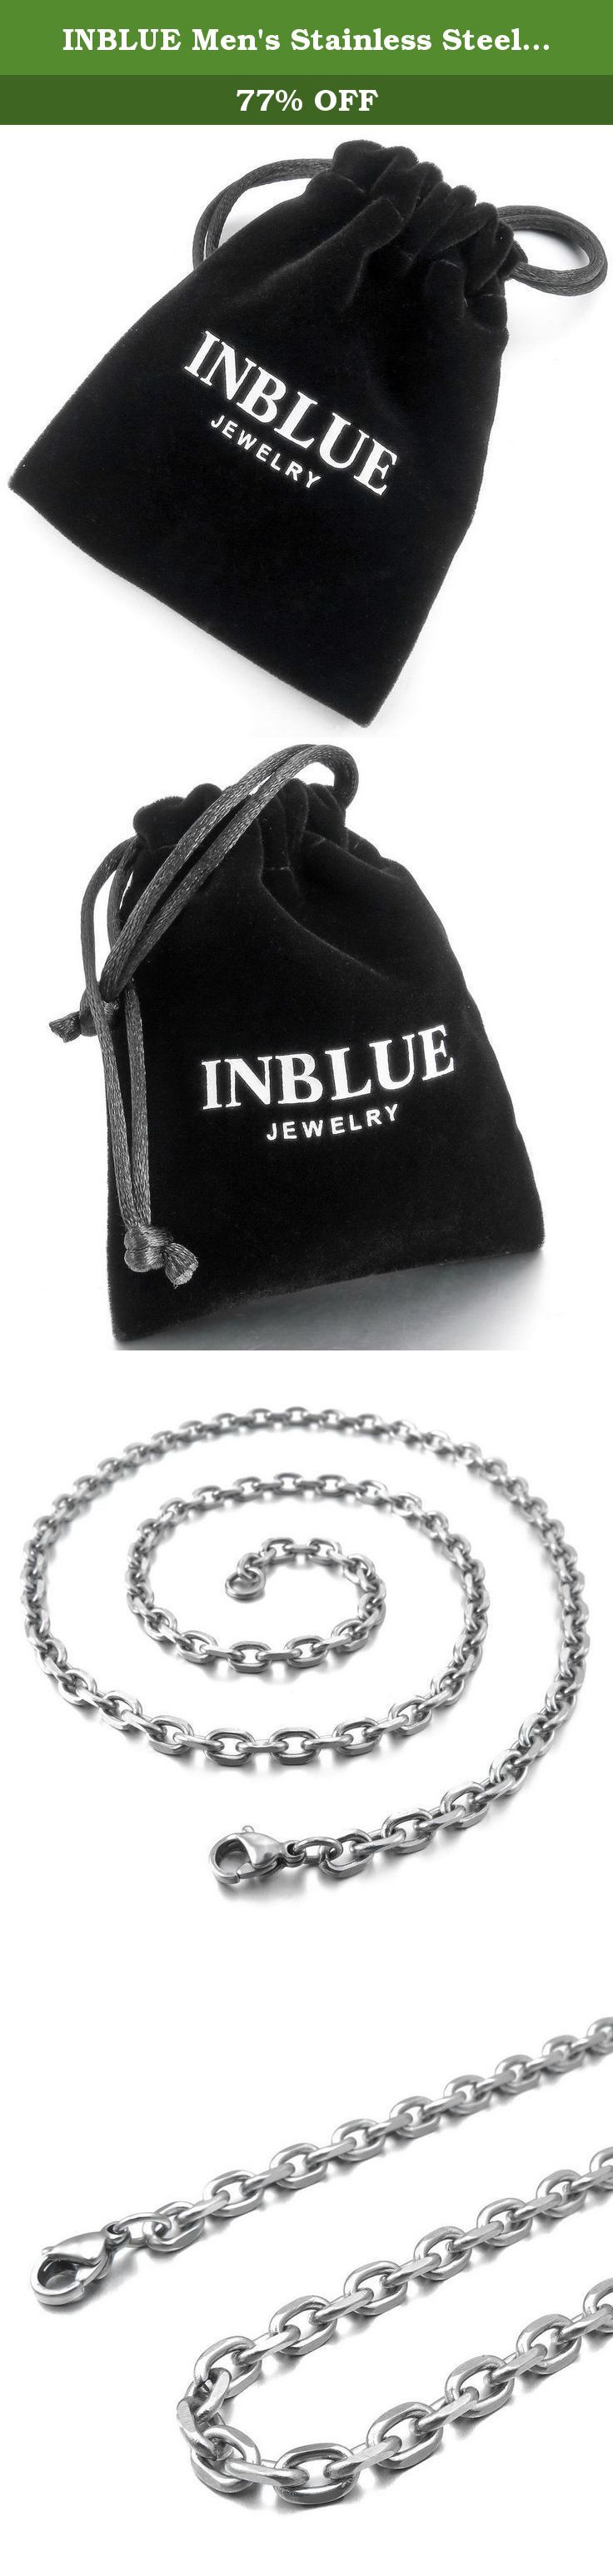 INBLUE Men's Stainless Steel Pendant Necklace Silver Tone Black Pirate Skull -with 23 inch Chain. INBLUE - High quality Jewelry Discover the INBLUE Collection of jewelry. The selection of high-quality jewelry featured in the INBLUE Collection offers Great values at affordable Price, they mainly made of high quality Stainless Steel, Tungsten, Silver and Leather. Find a special gift for a loved one or a beautiful piece that complements your personal style with jewelry from the INBLUE...